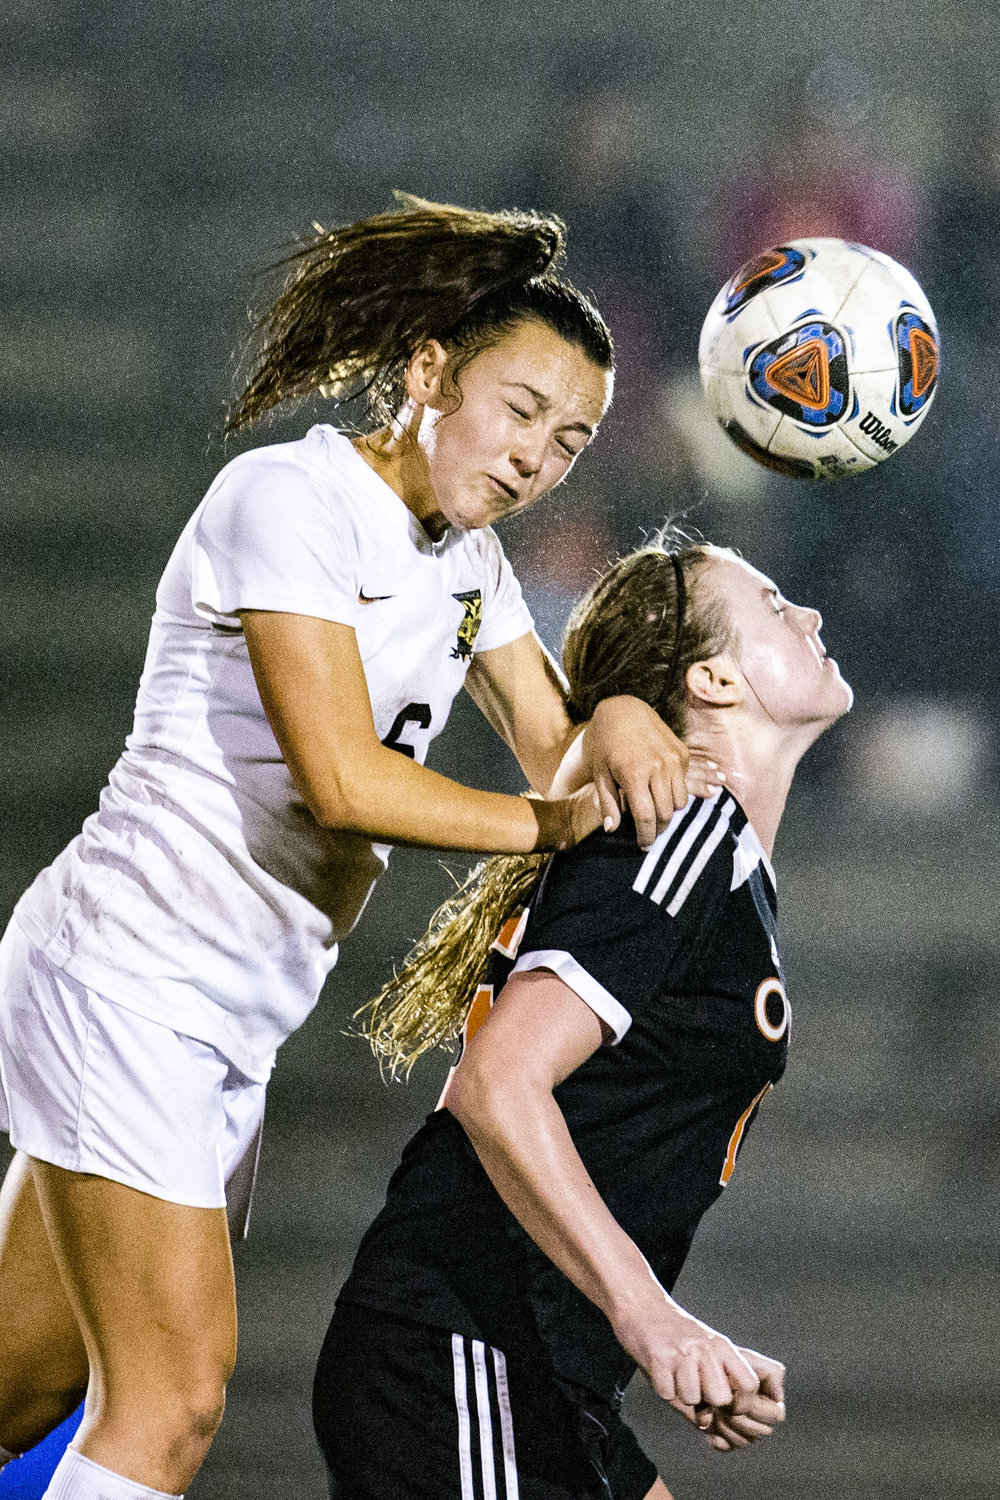 Buchholz's Natalie Johnson pushes off of an Oviedo player to head the ball during the match at Citizens Field on February 13, 2018. Buchholz High lost 0-2 to Oviedo High.